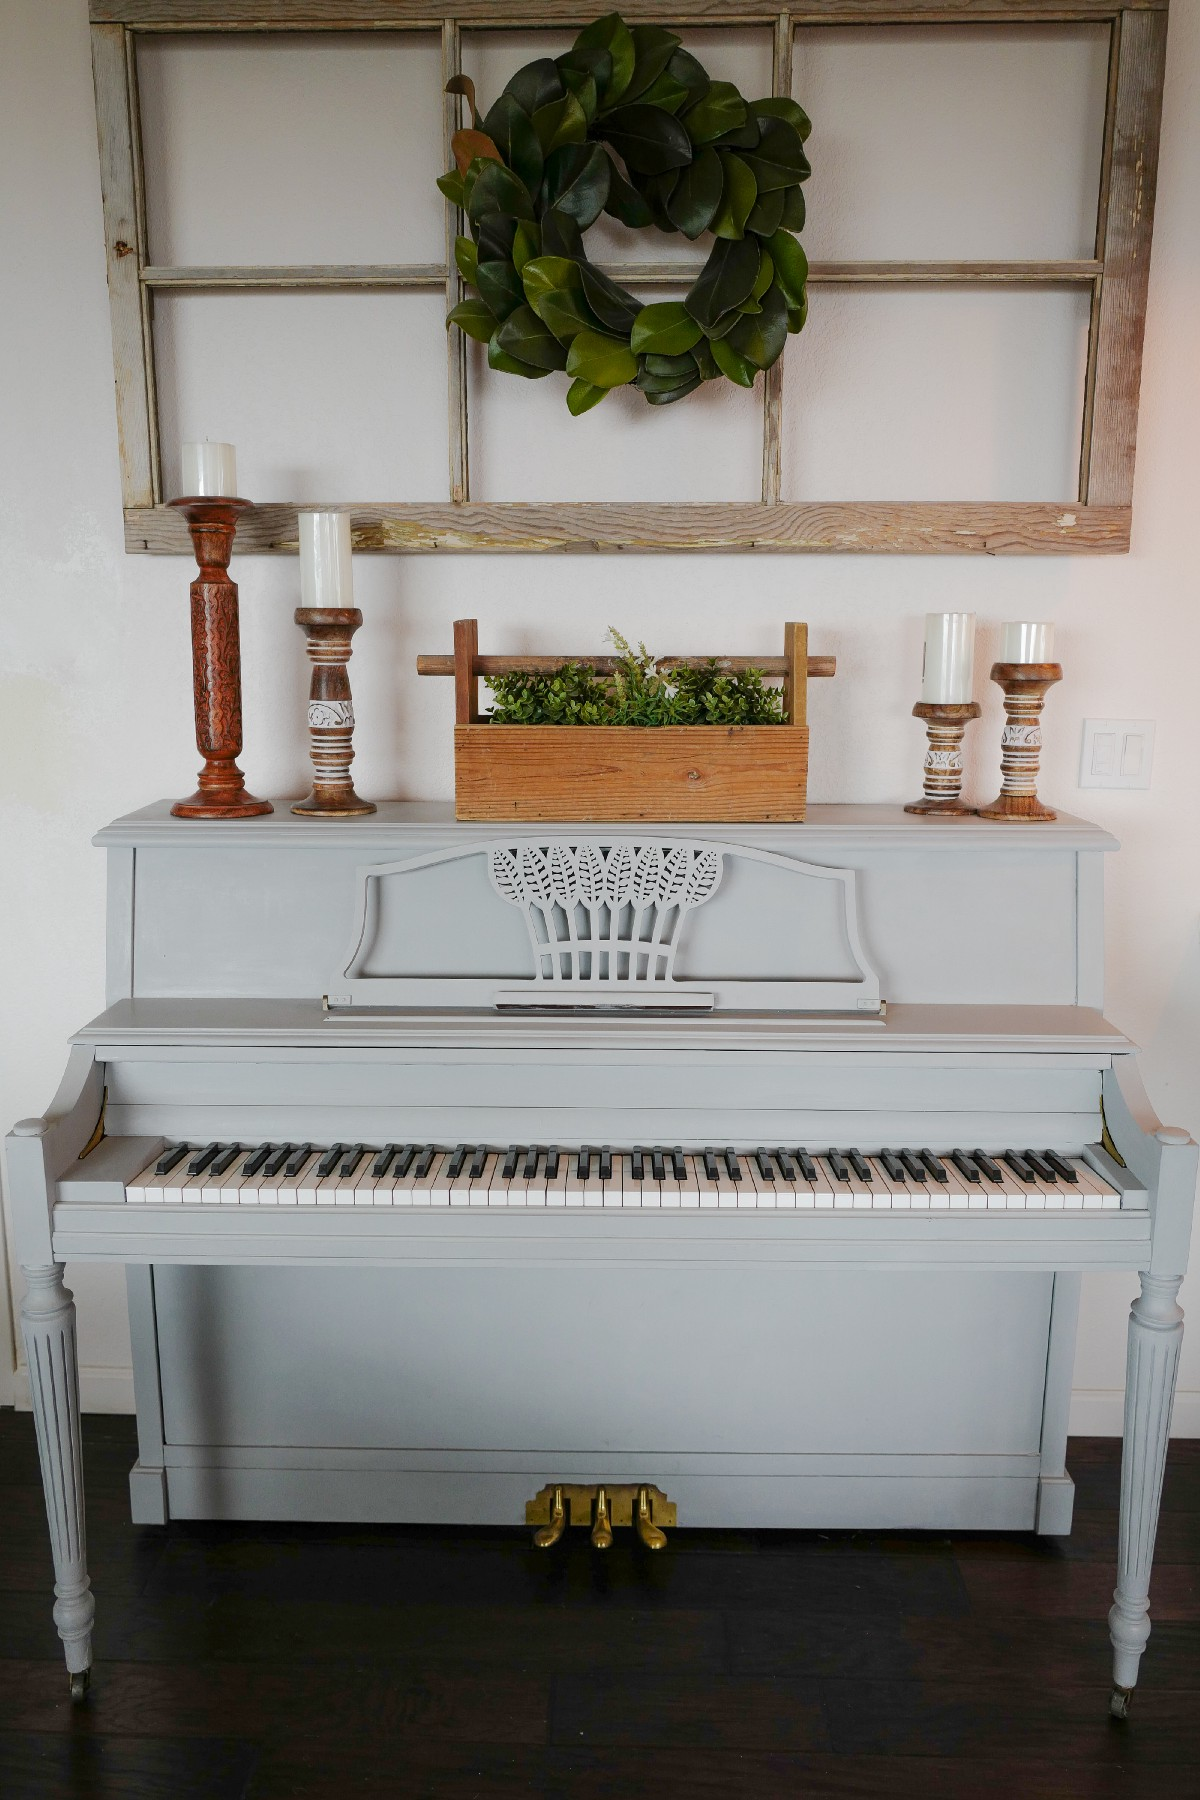 Decorating with a piano - Since The Piano Itself Is Painted Grey I Felt The Freedom To Add Some Touches Of Wood Both On Top Of And Over My Piano The Outcome Was Heavenly